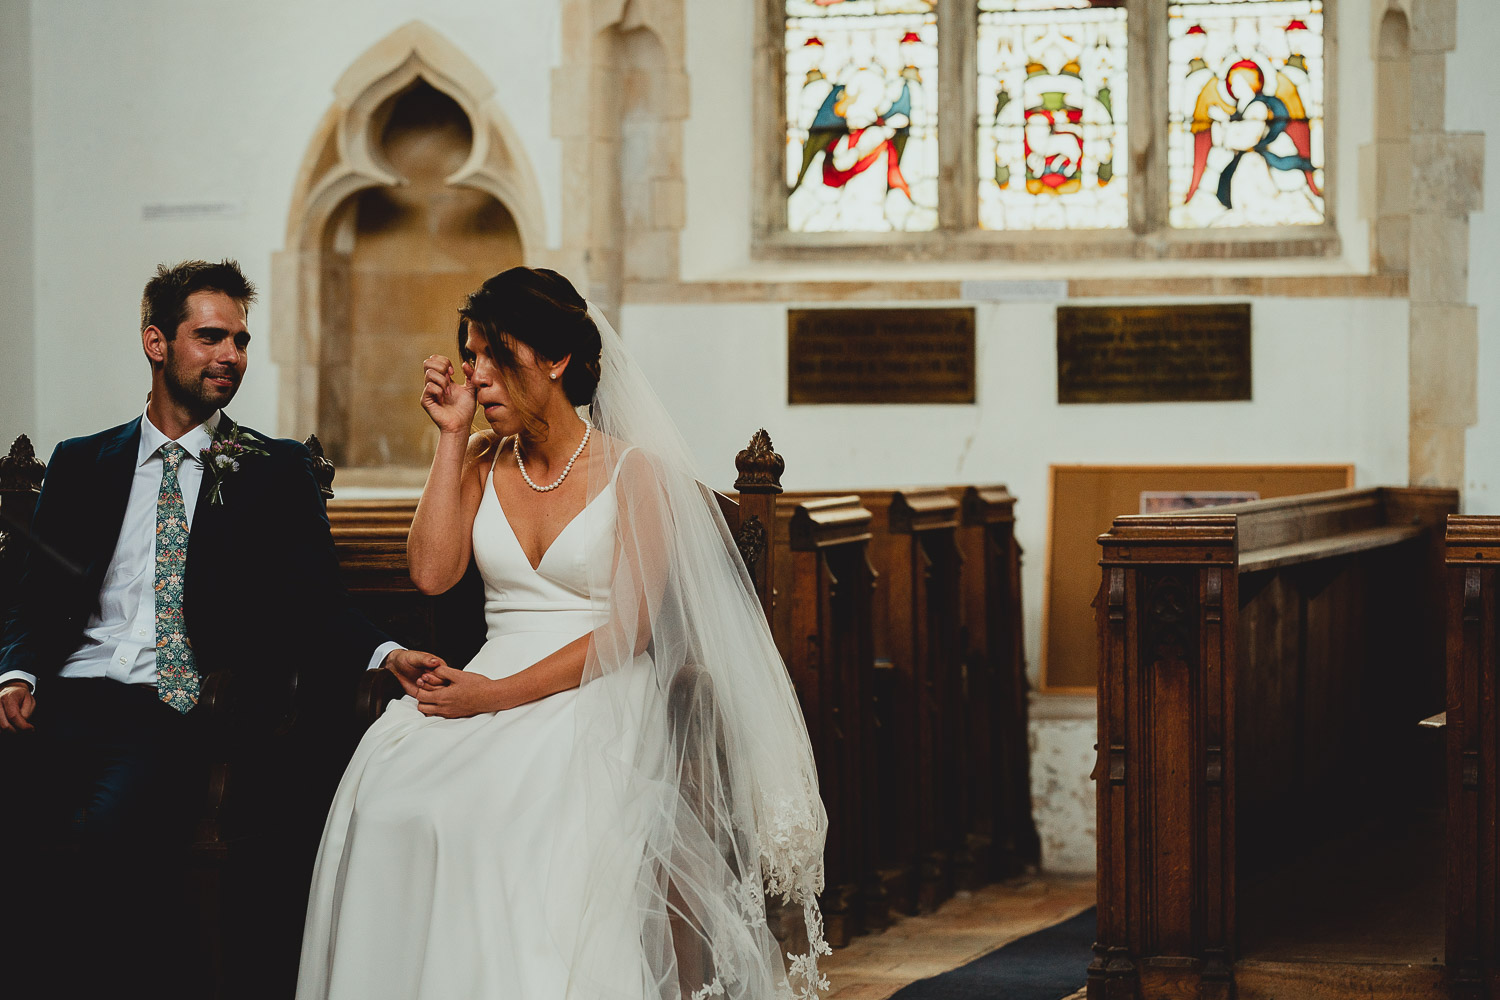 church wedding harleston norfolk by georgia rachael